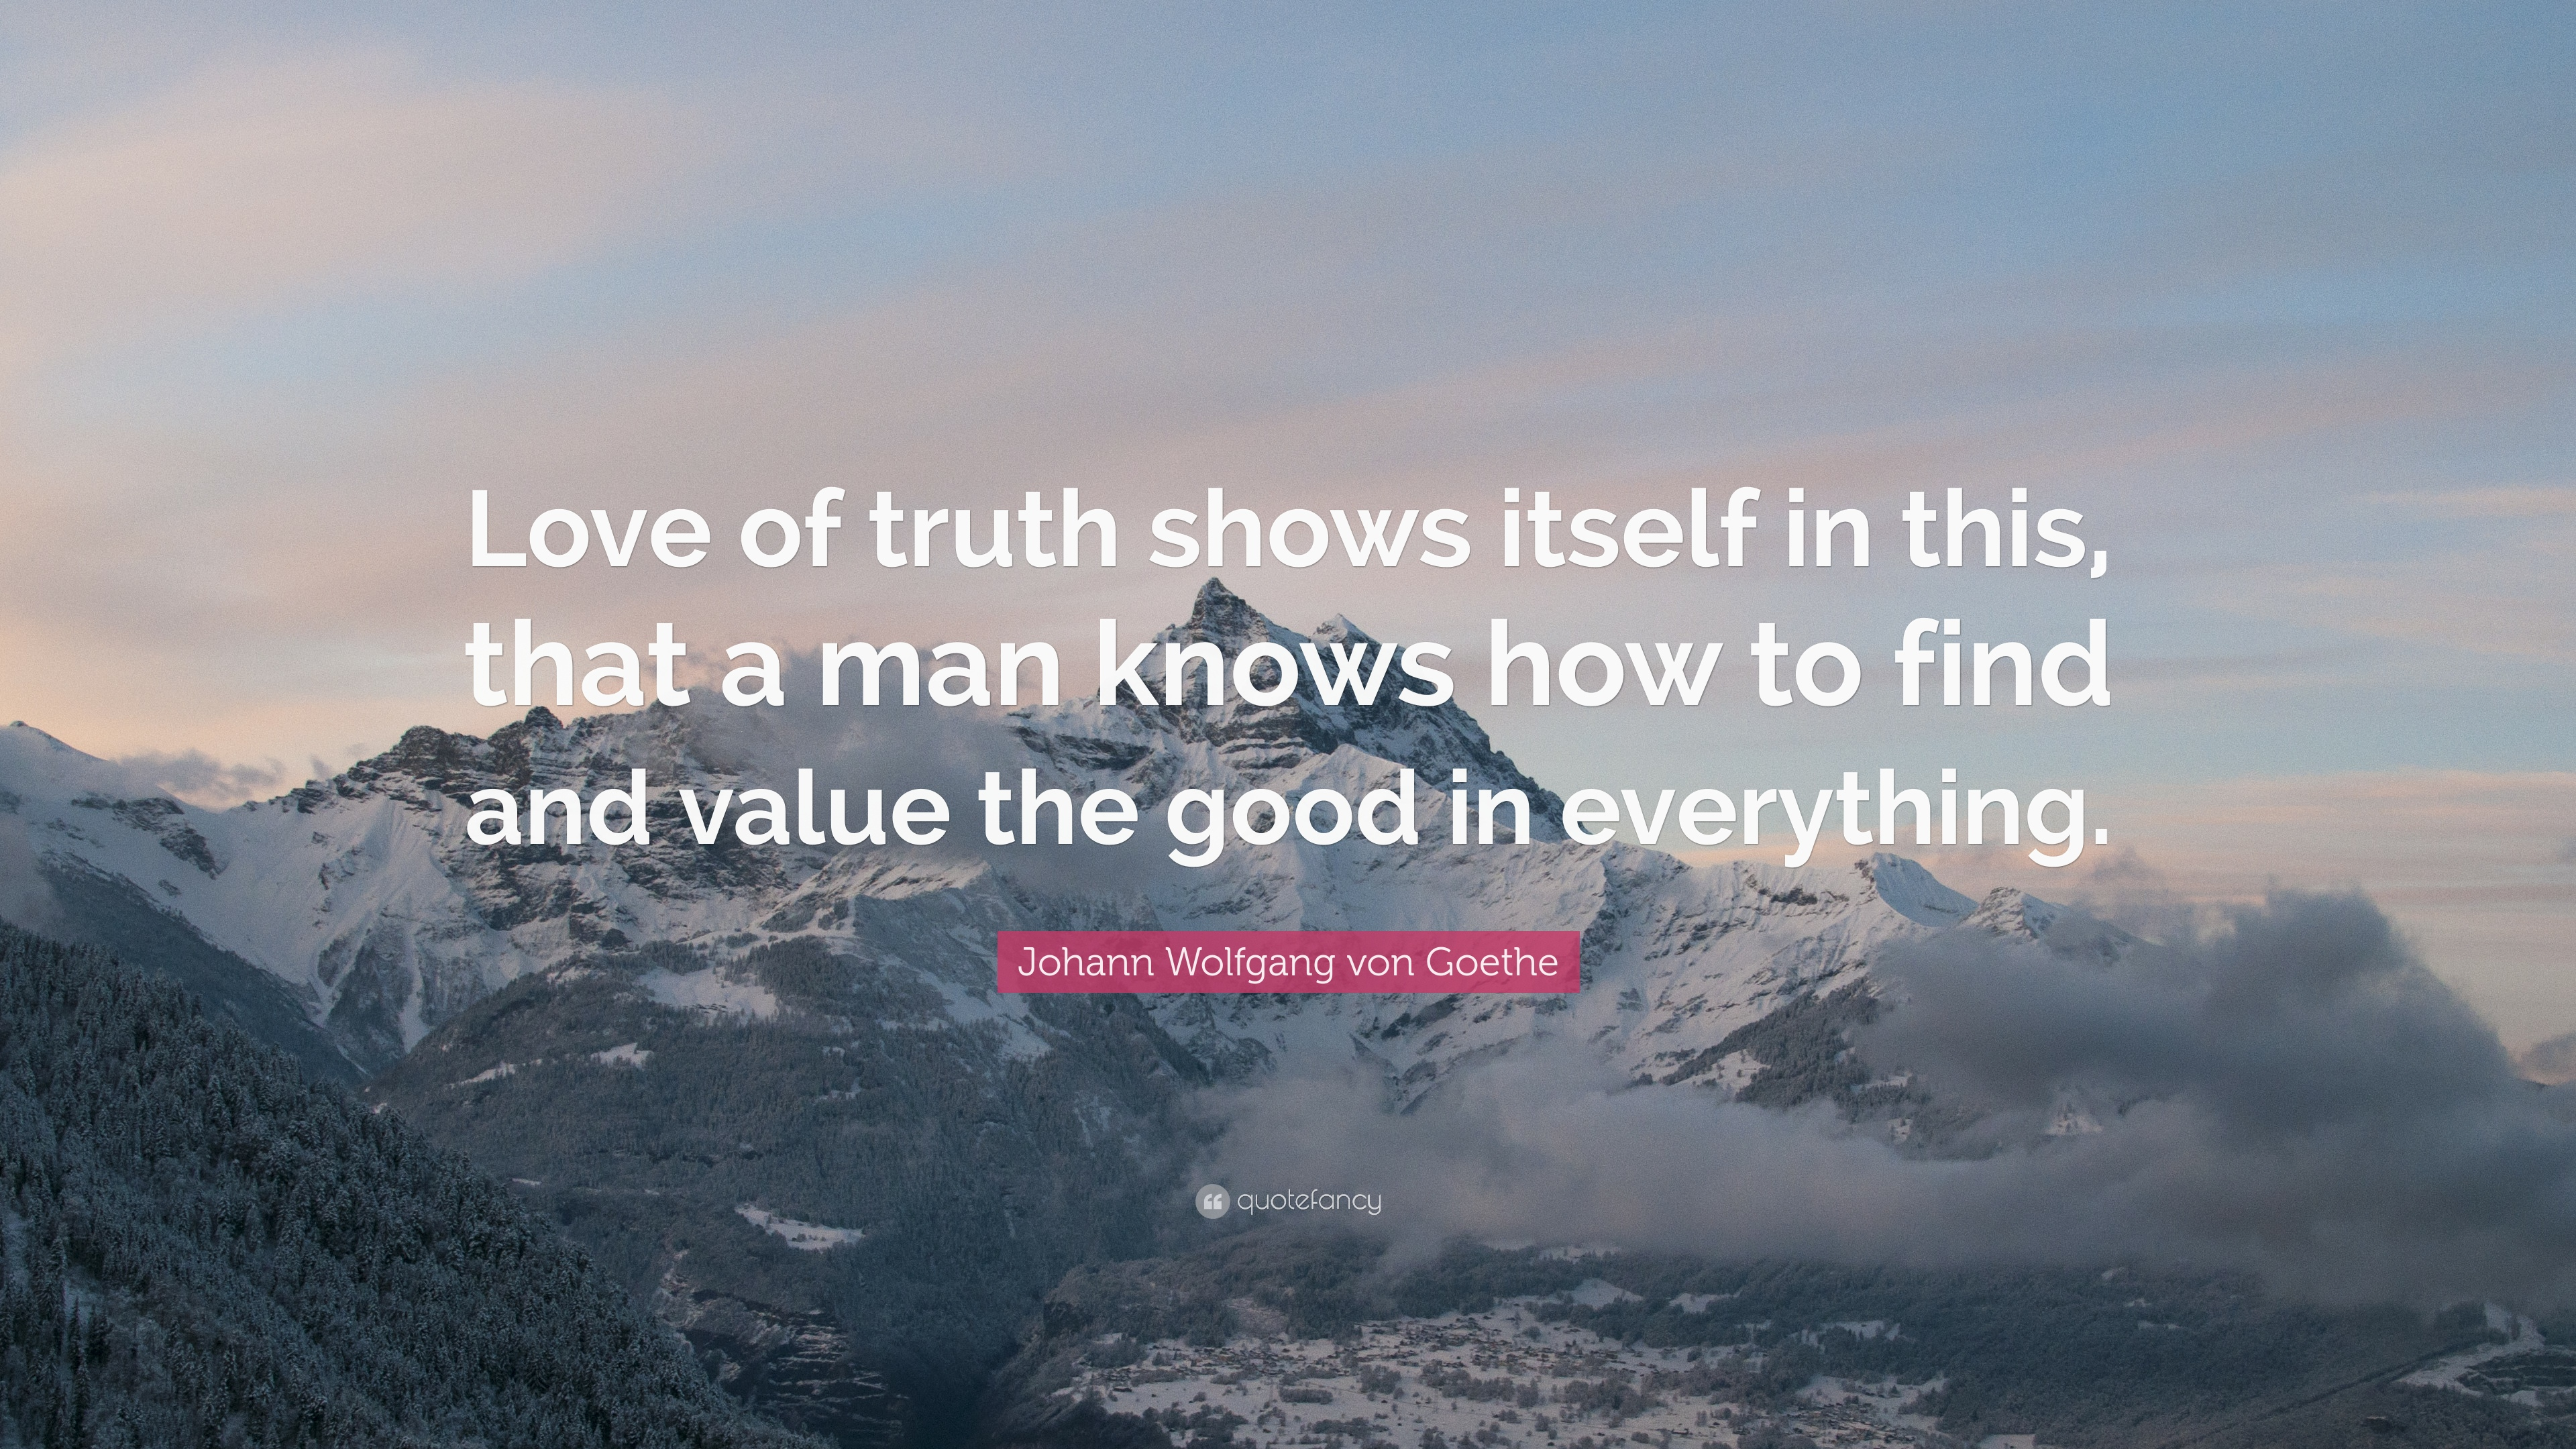 Johann Wolfgang Von Goethe Quote: €�love Of Truth Shows Itself In This, That